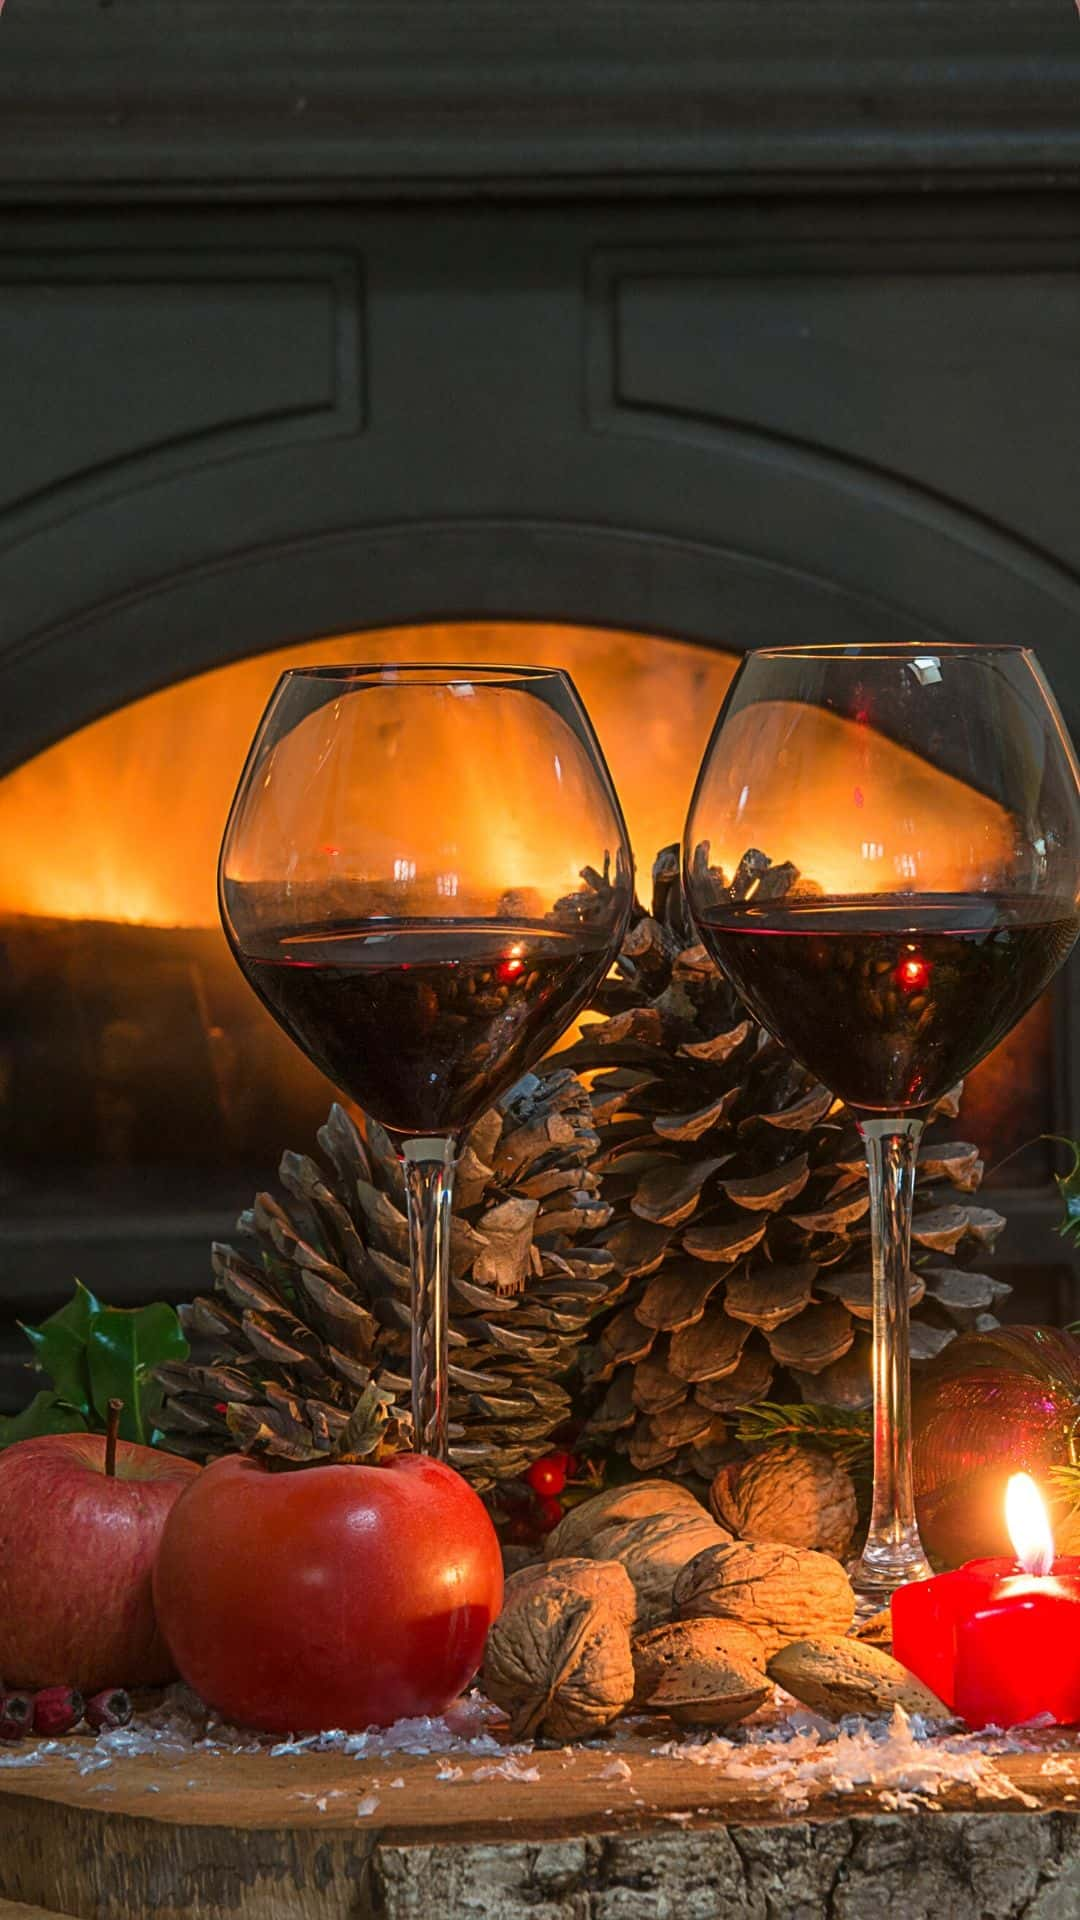 Cozy Christmas Backgrounds For iPhone Wallpaper Merlot By The Fire